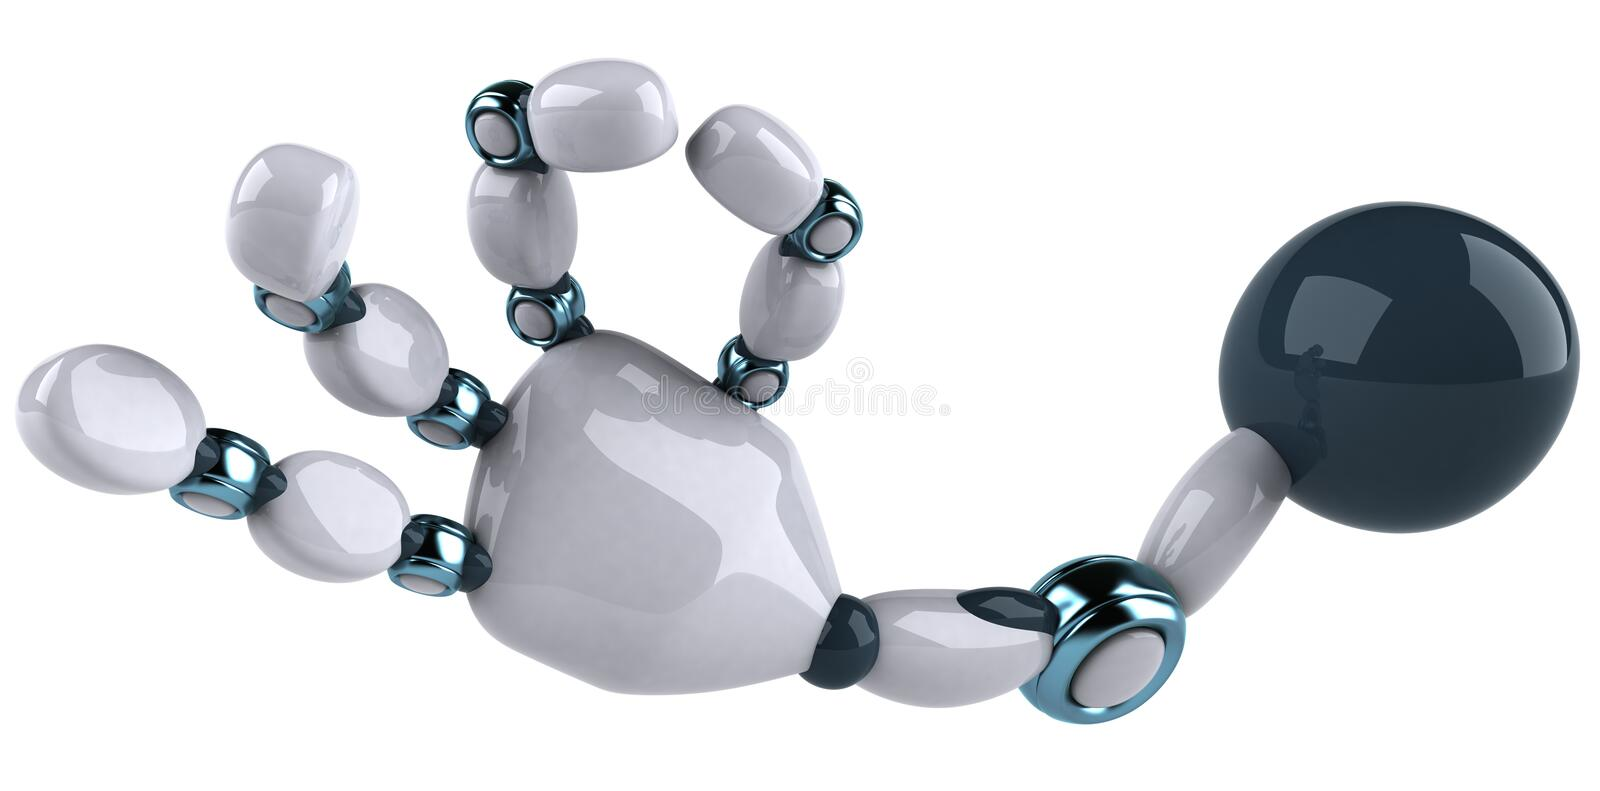 Robot's hand stock illustration